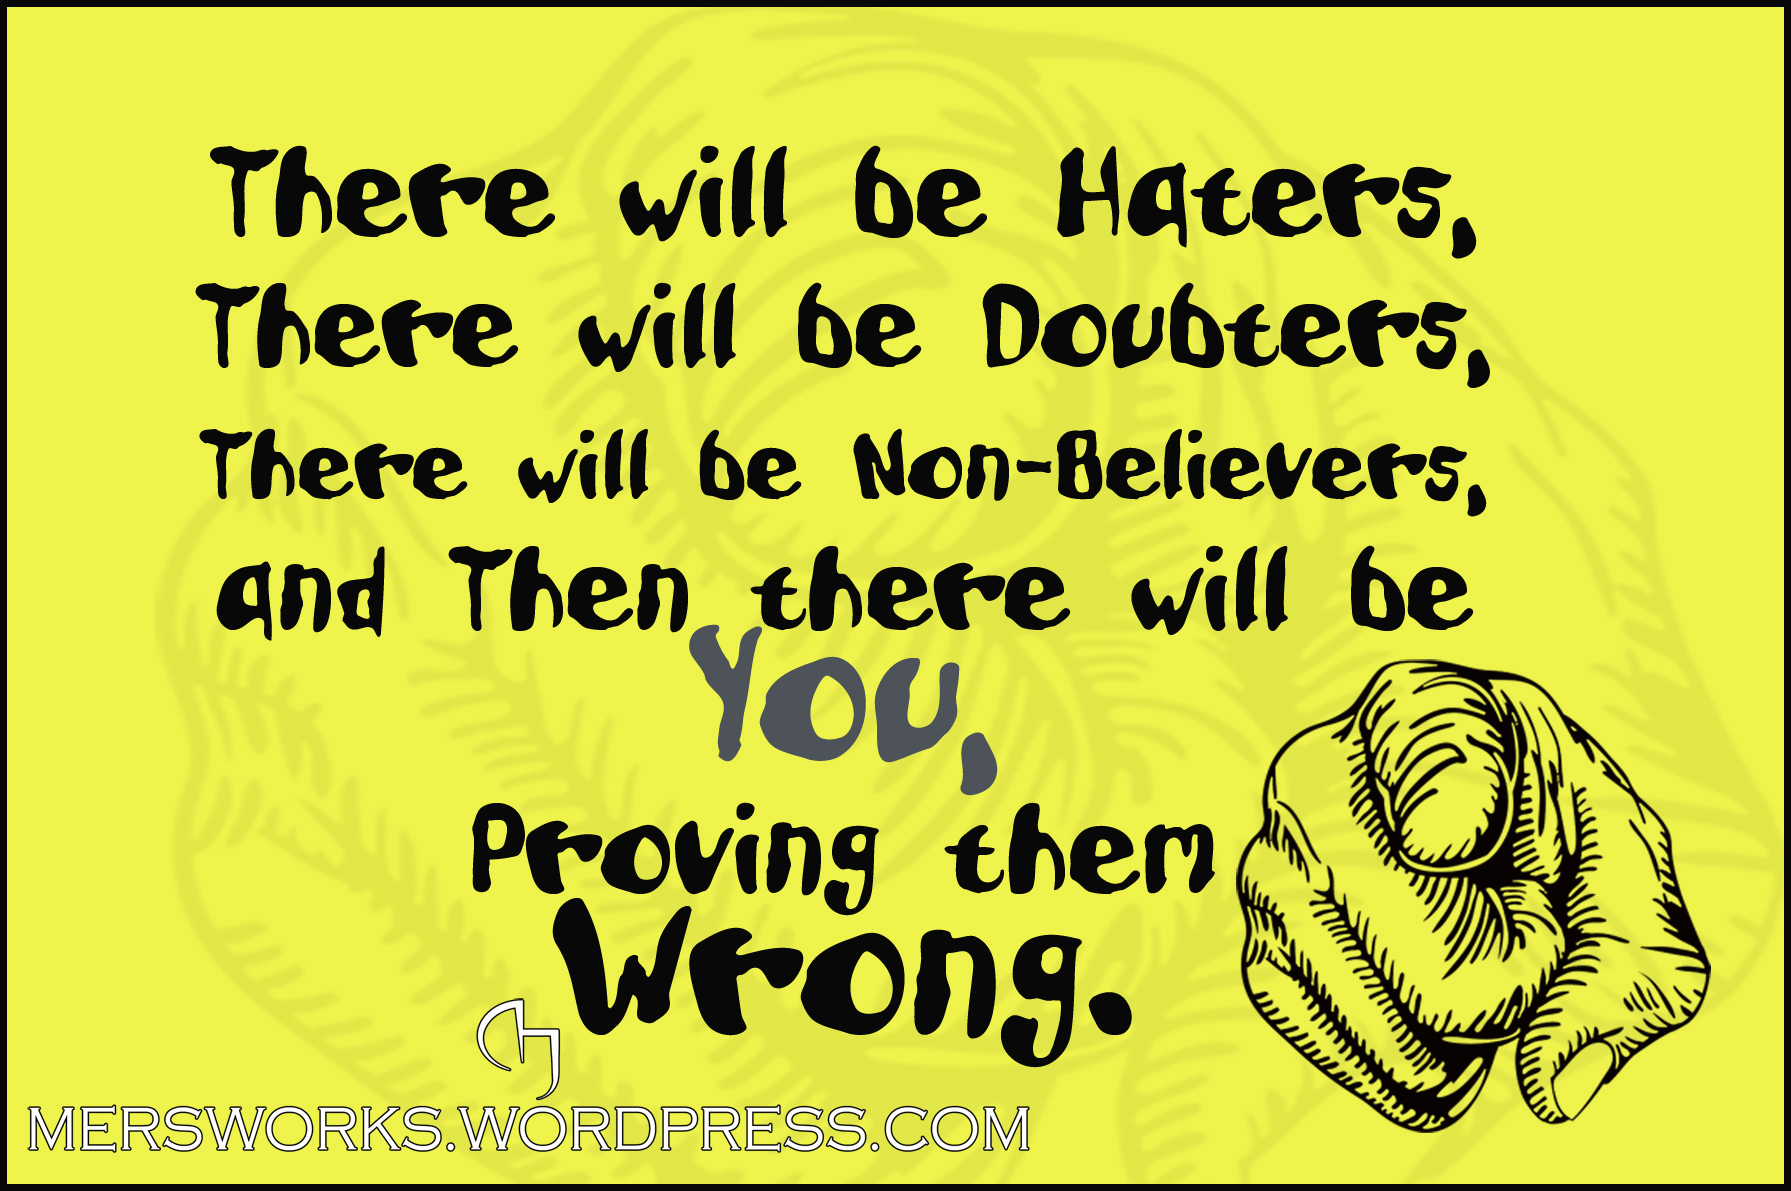 haters,doubters and non believers